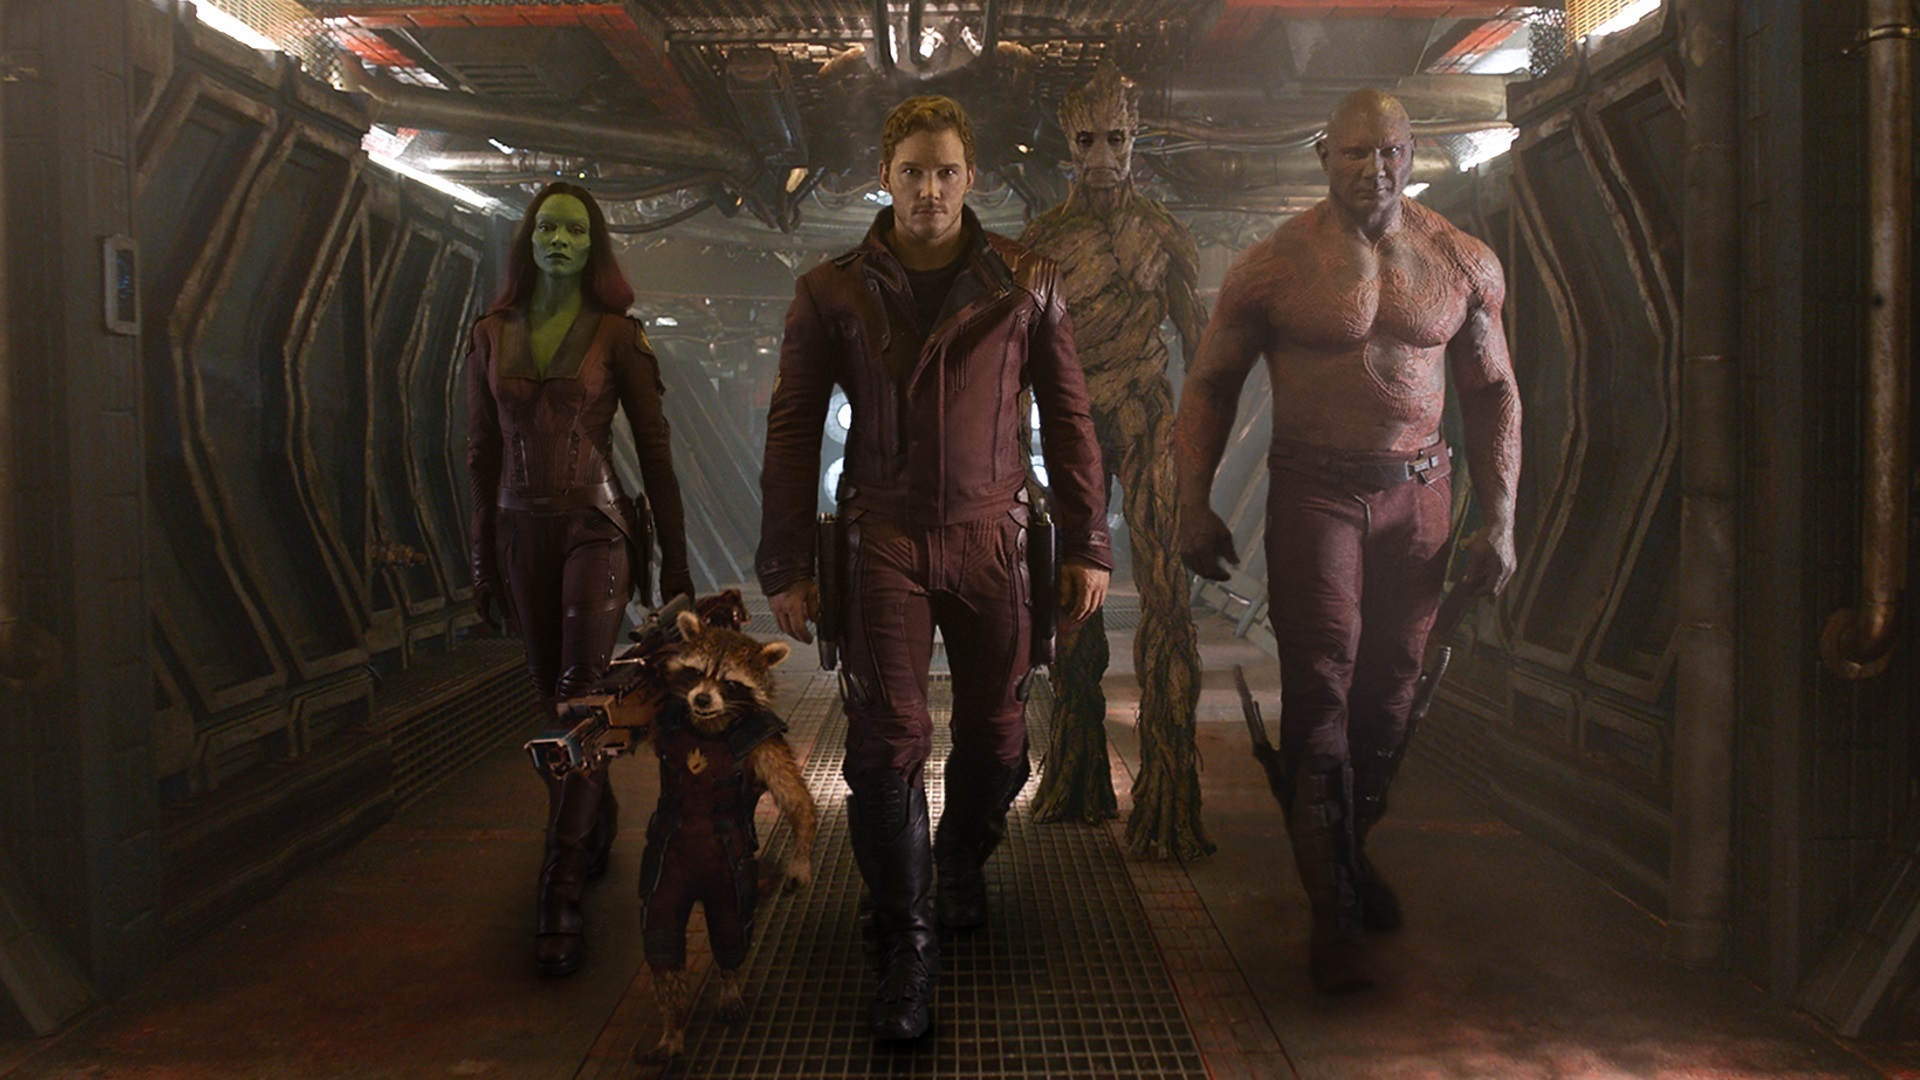 Marvel called Guardians of the Galaxy 2 'risky,' writer says